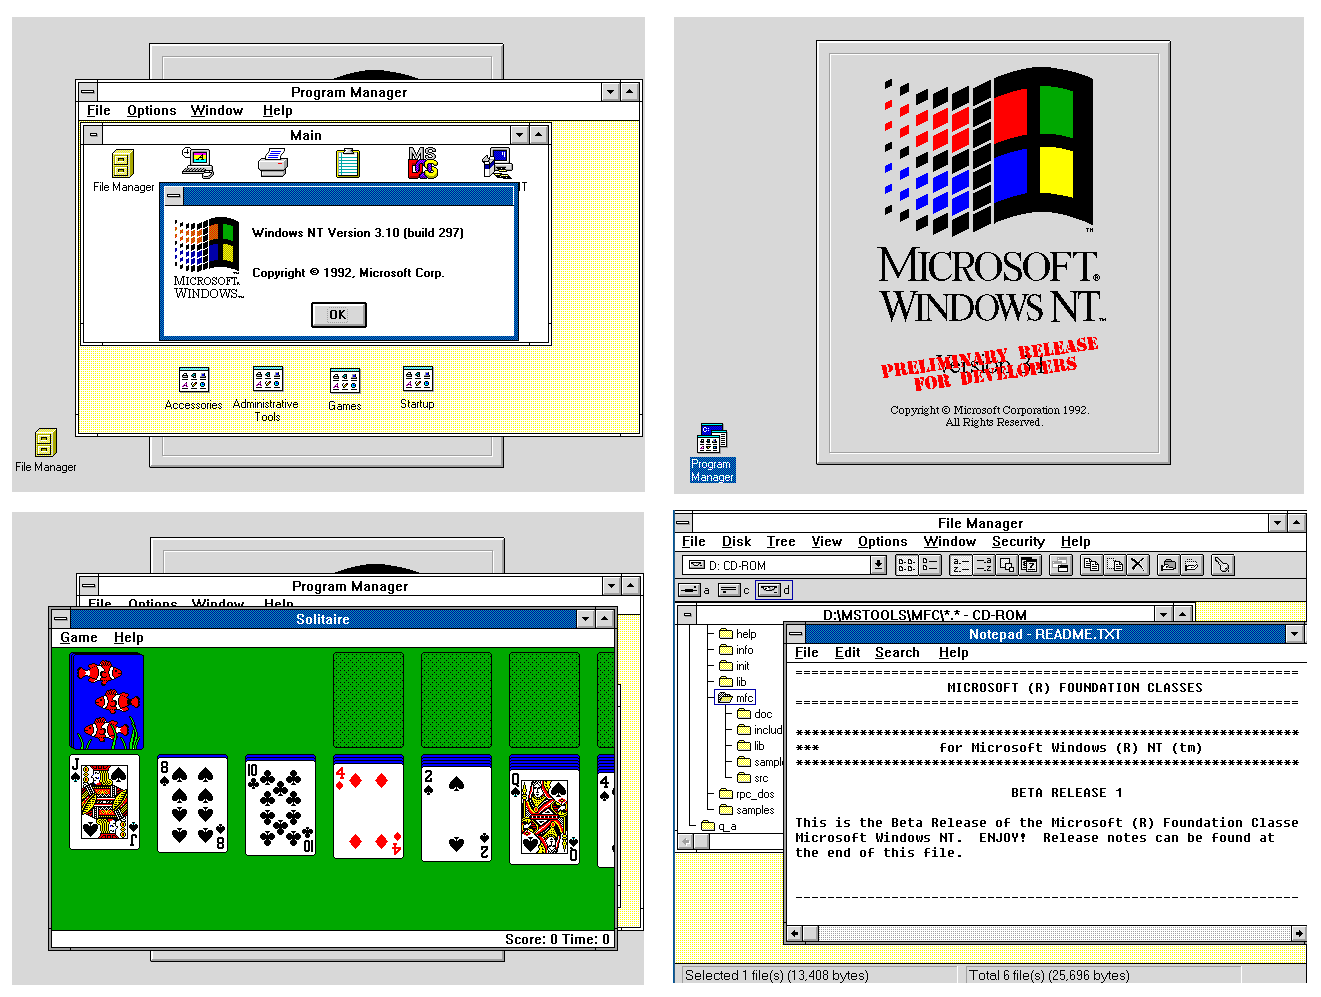 Several screen shots of Windows NT 3.1 297 including some of my own code.